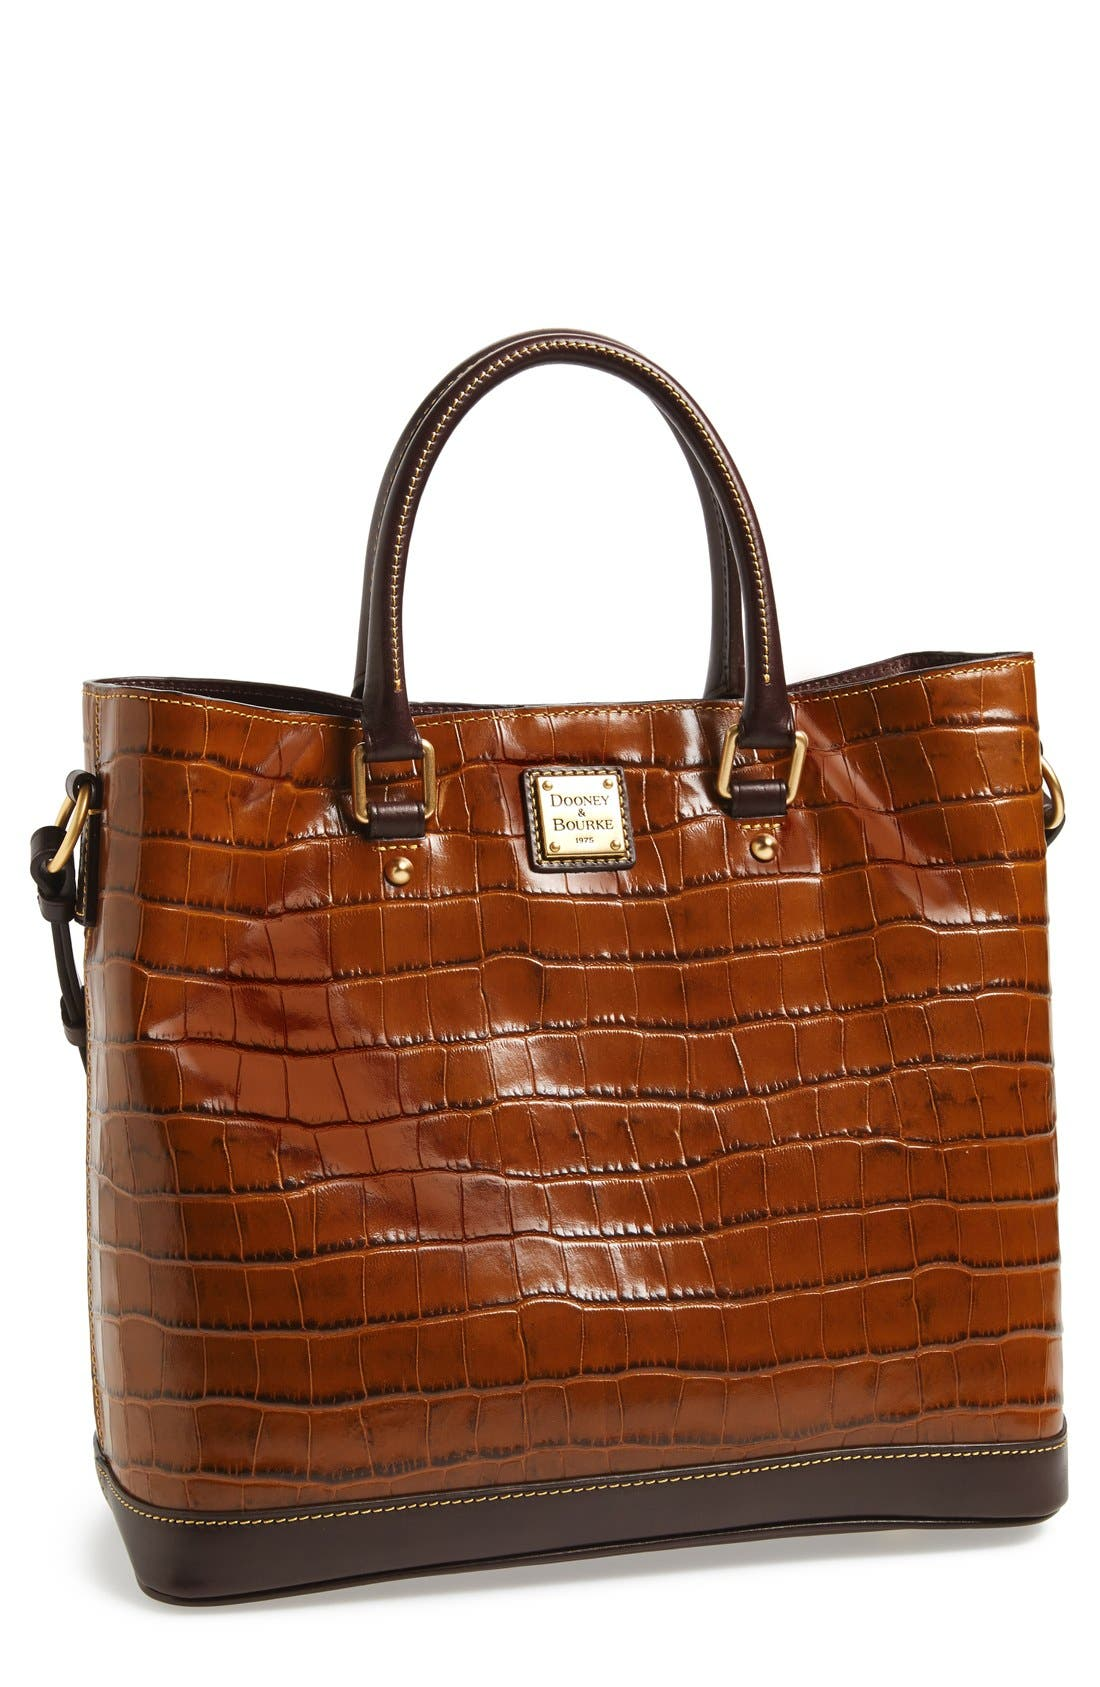 Main Image - Dooney & Bourke 'Chelsea' Croc Embossed Leather Tote